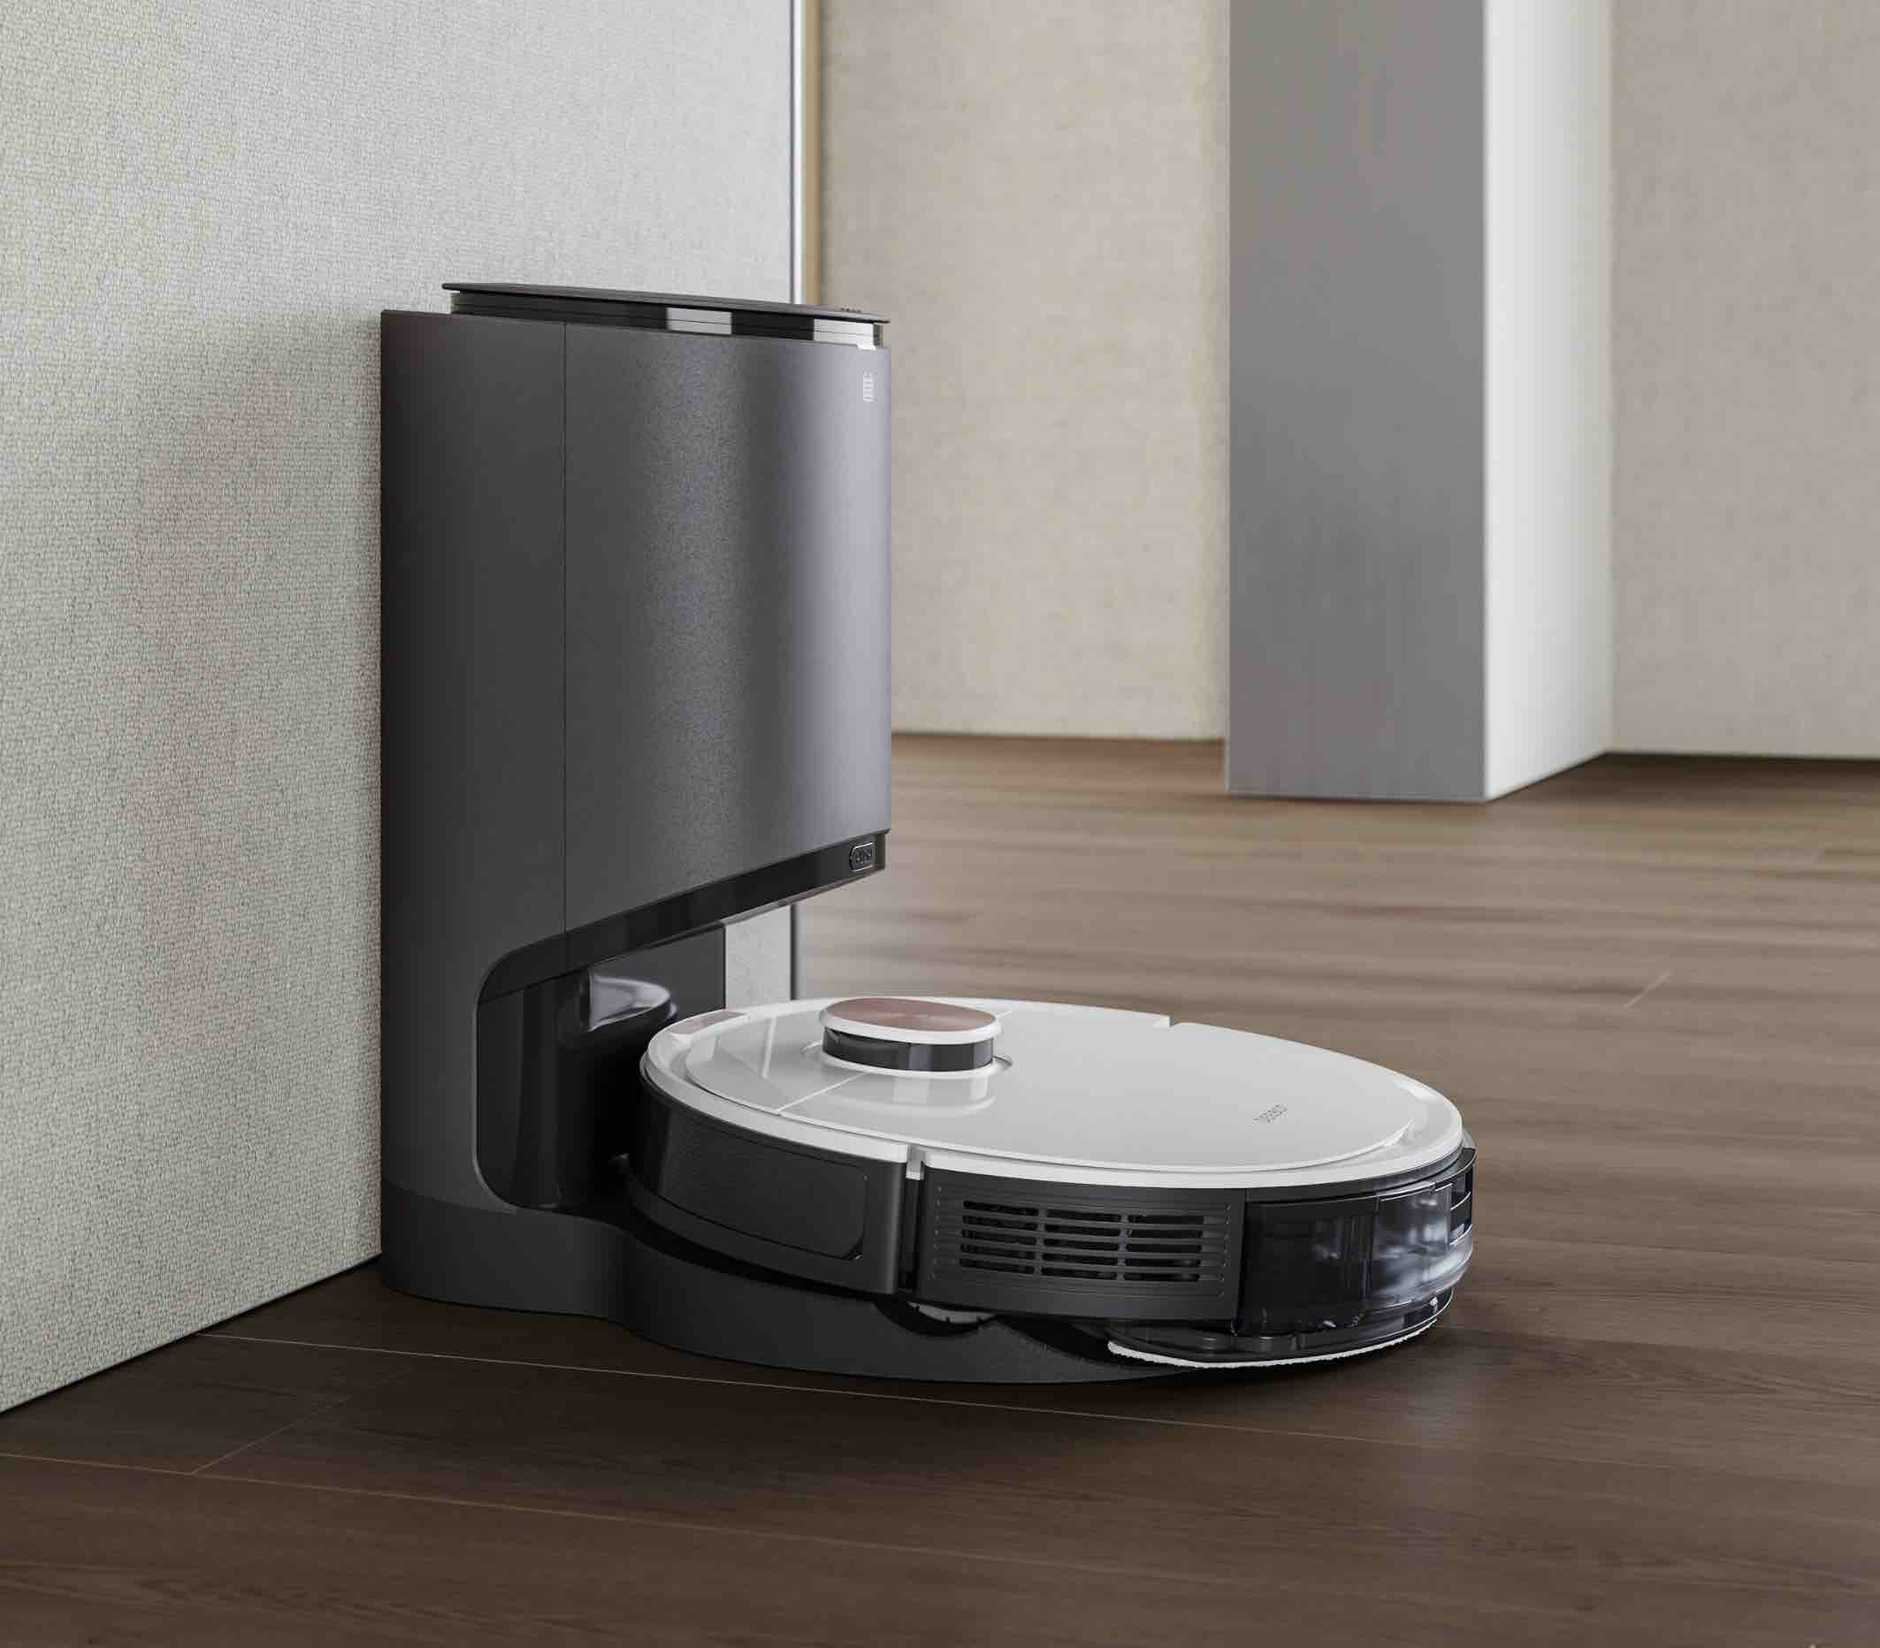 The DEEBOT OZMO T8 and automatic cleaning station make for a very clever combination.